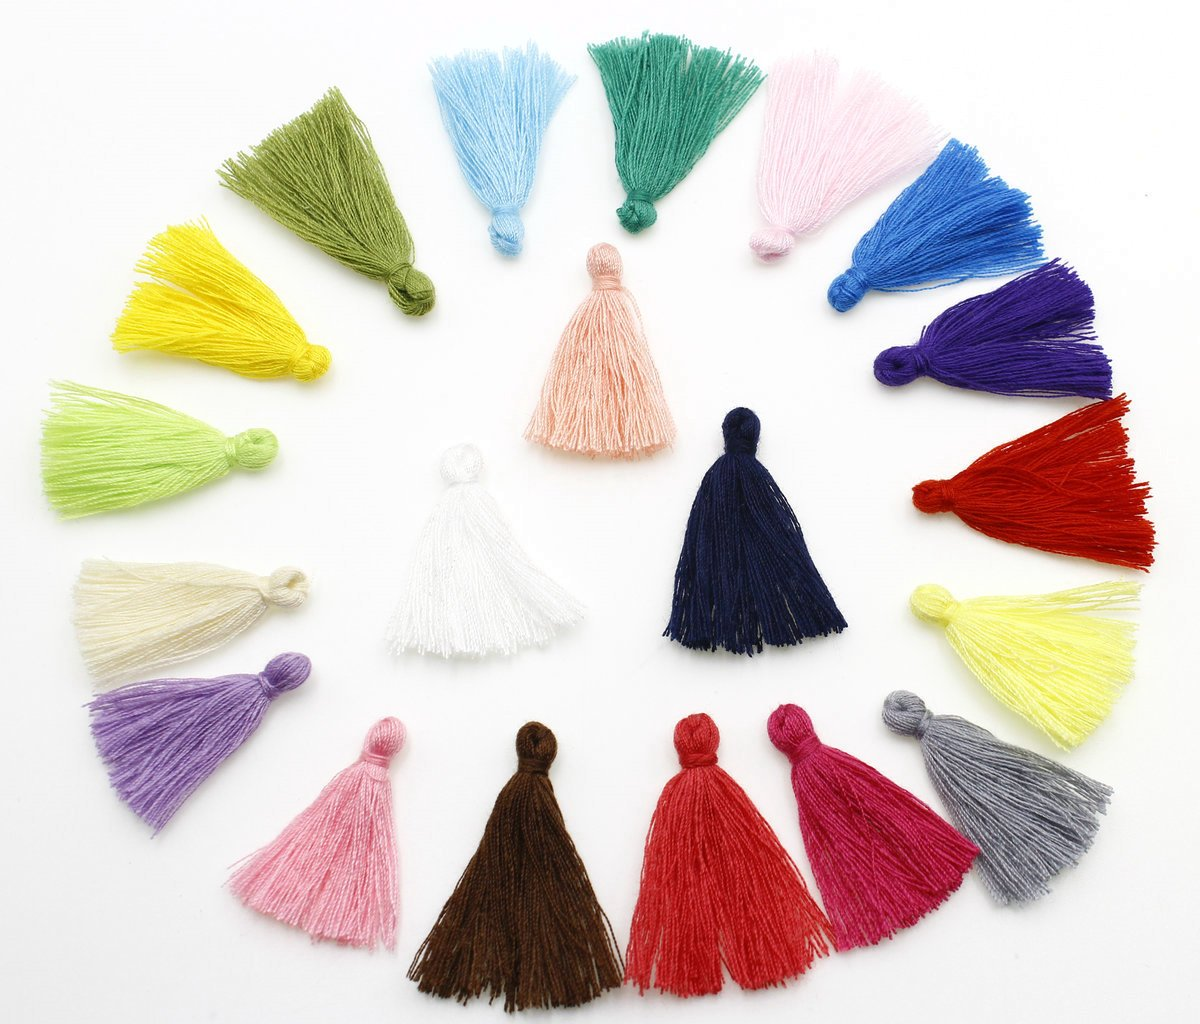 QianCraftKits Tassels Pendant Multi-Color Handmade Long Cottons Decorations, DIY Craft Supplies for Keychains, Jewelry Making, Earing or Bookmarks and Necklace(300pc, 20colors)